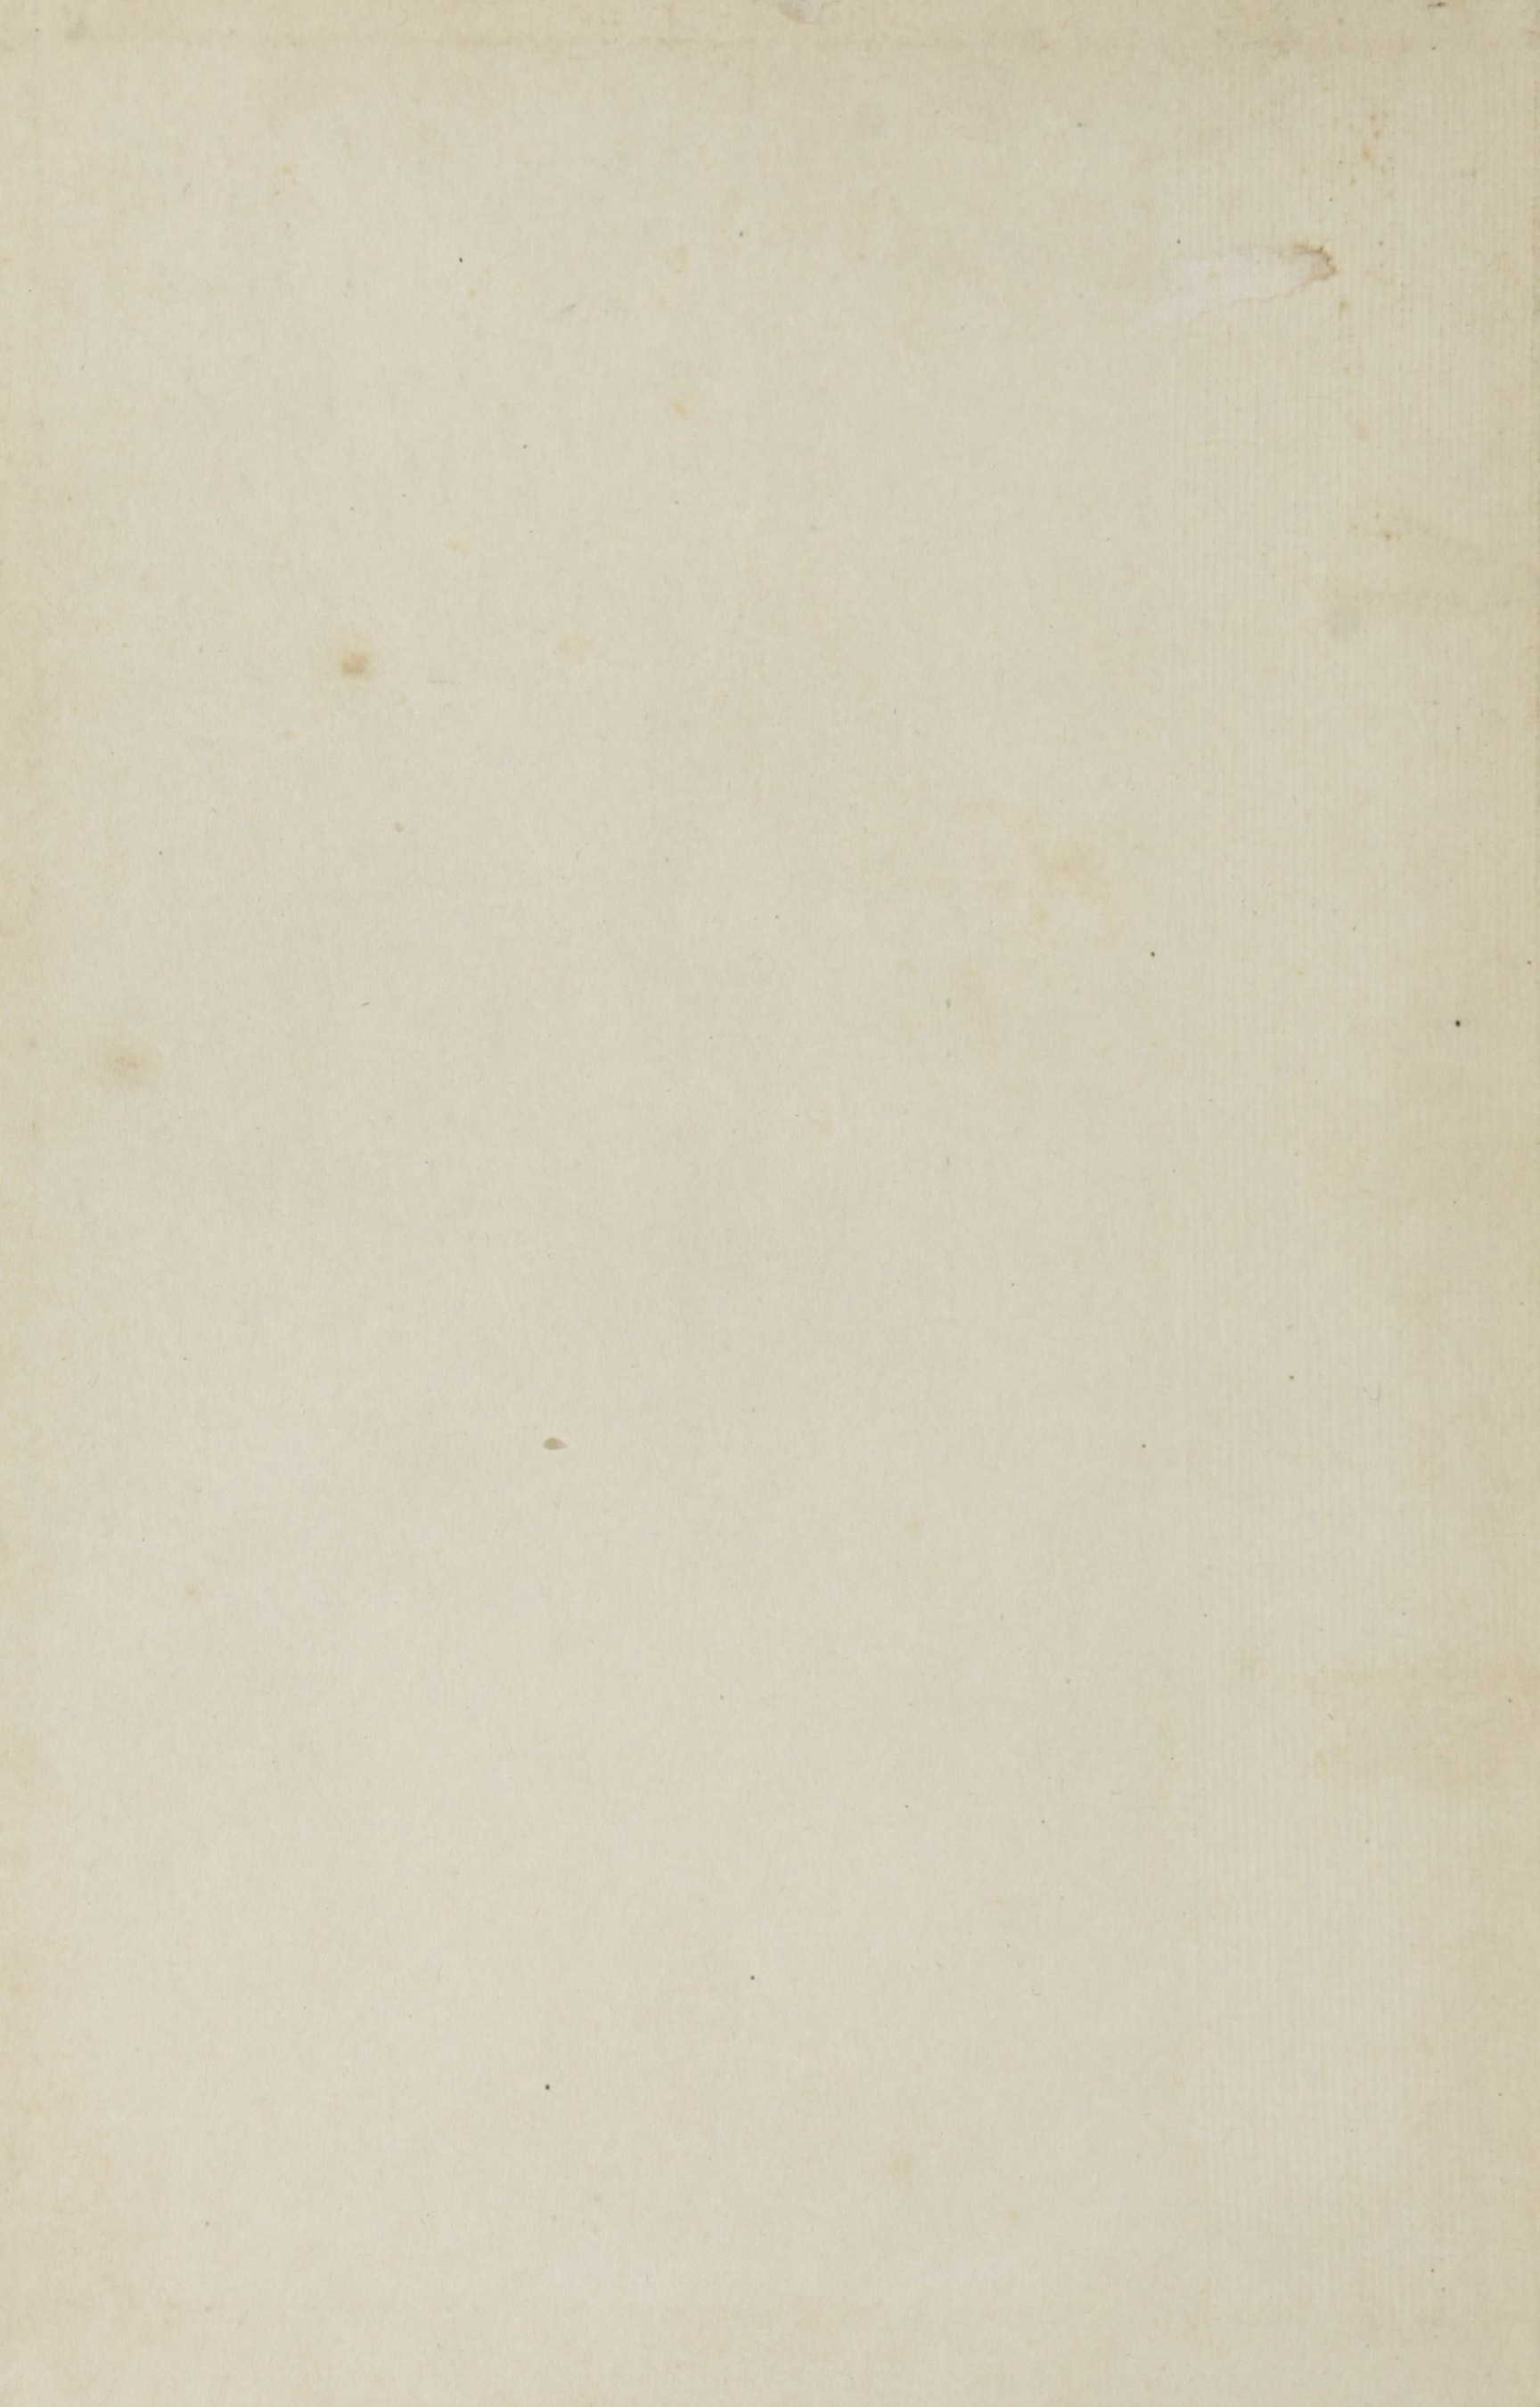 Charleston Yearbook, 1913, blank page